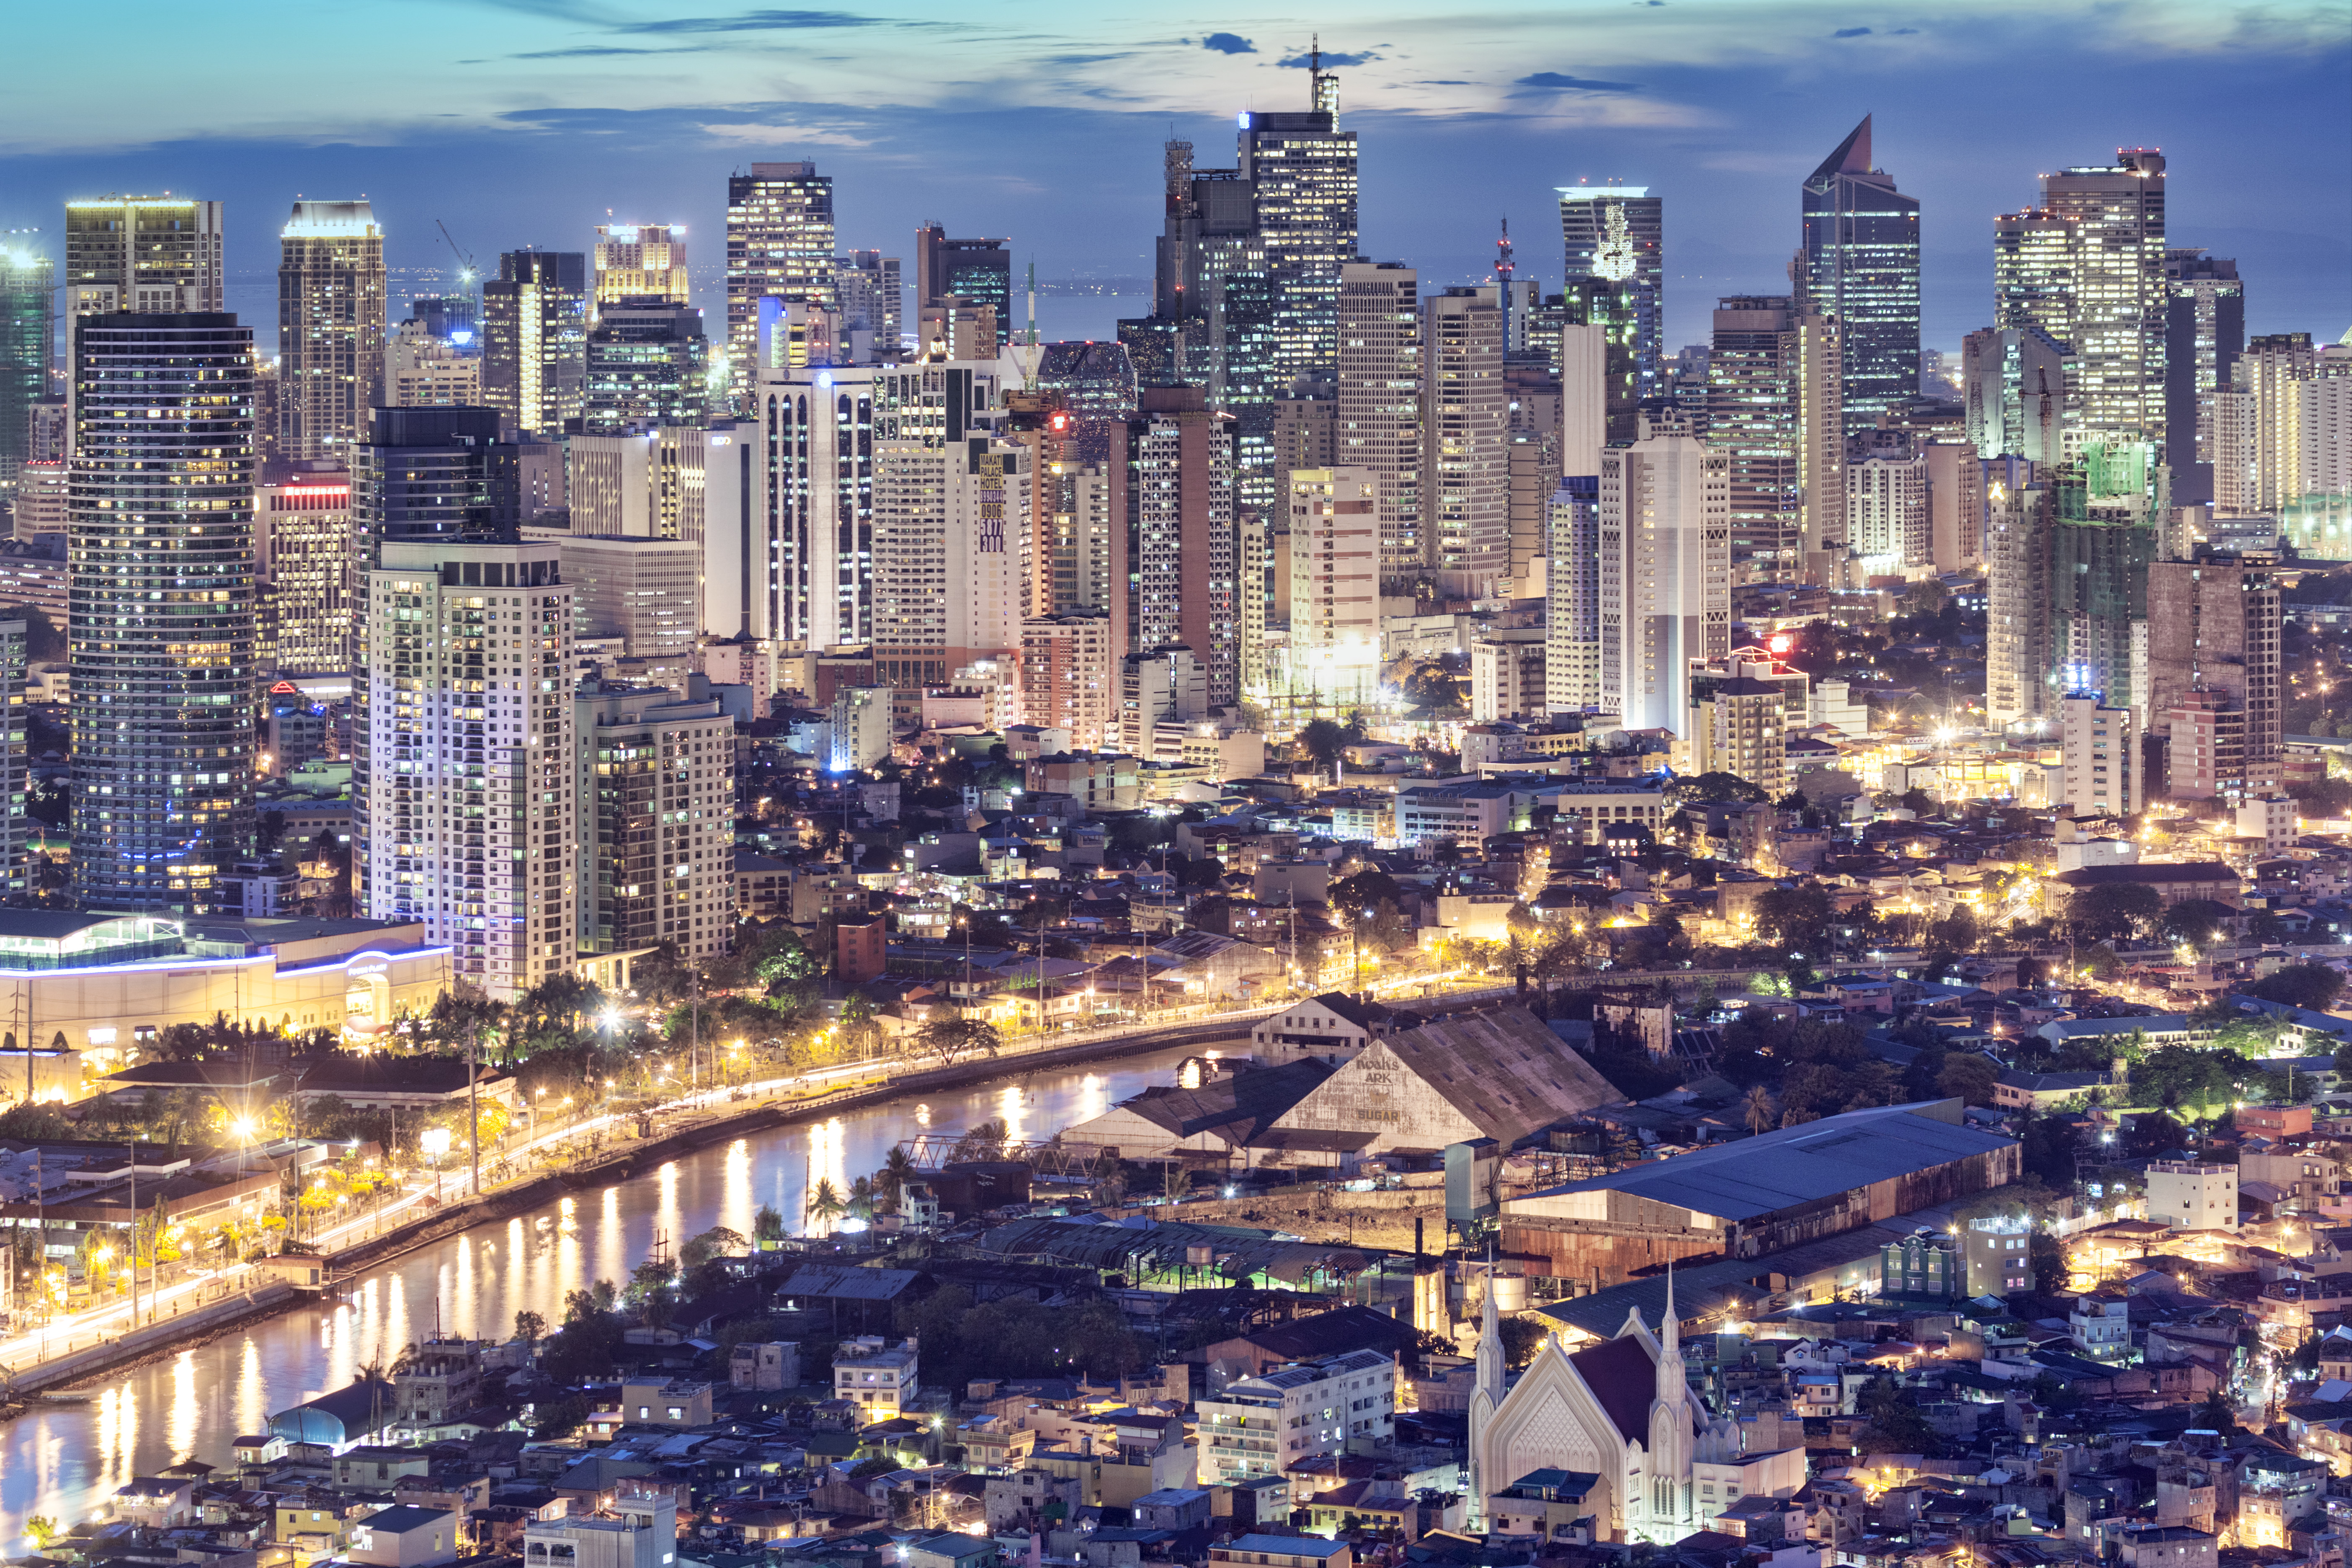 Philippines, Manila, Intramuros, Makati business district and Pasig river at dusk